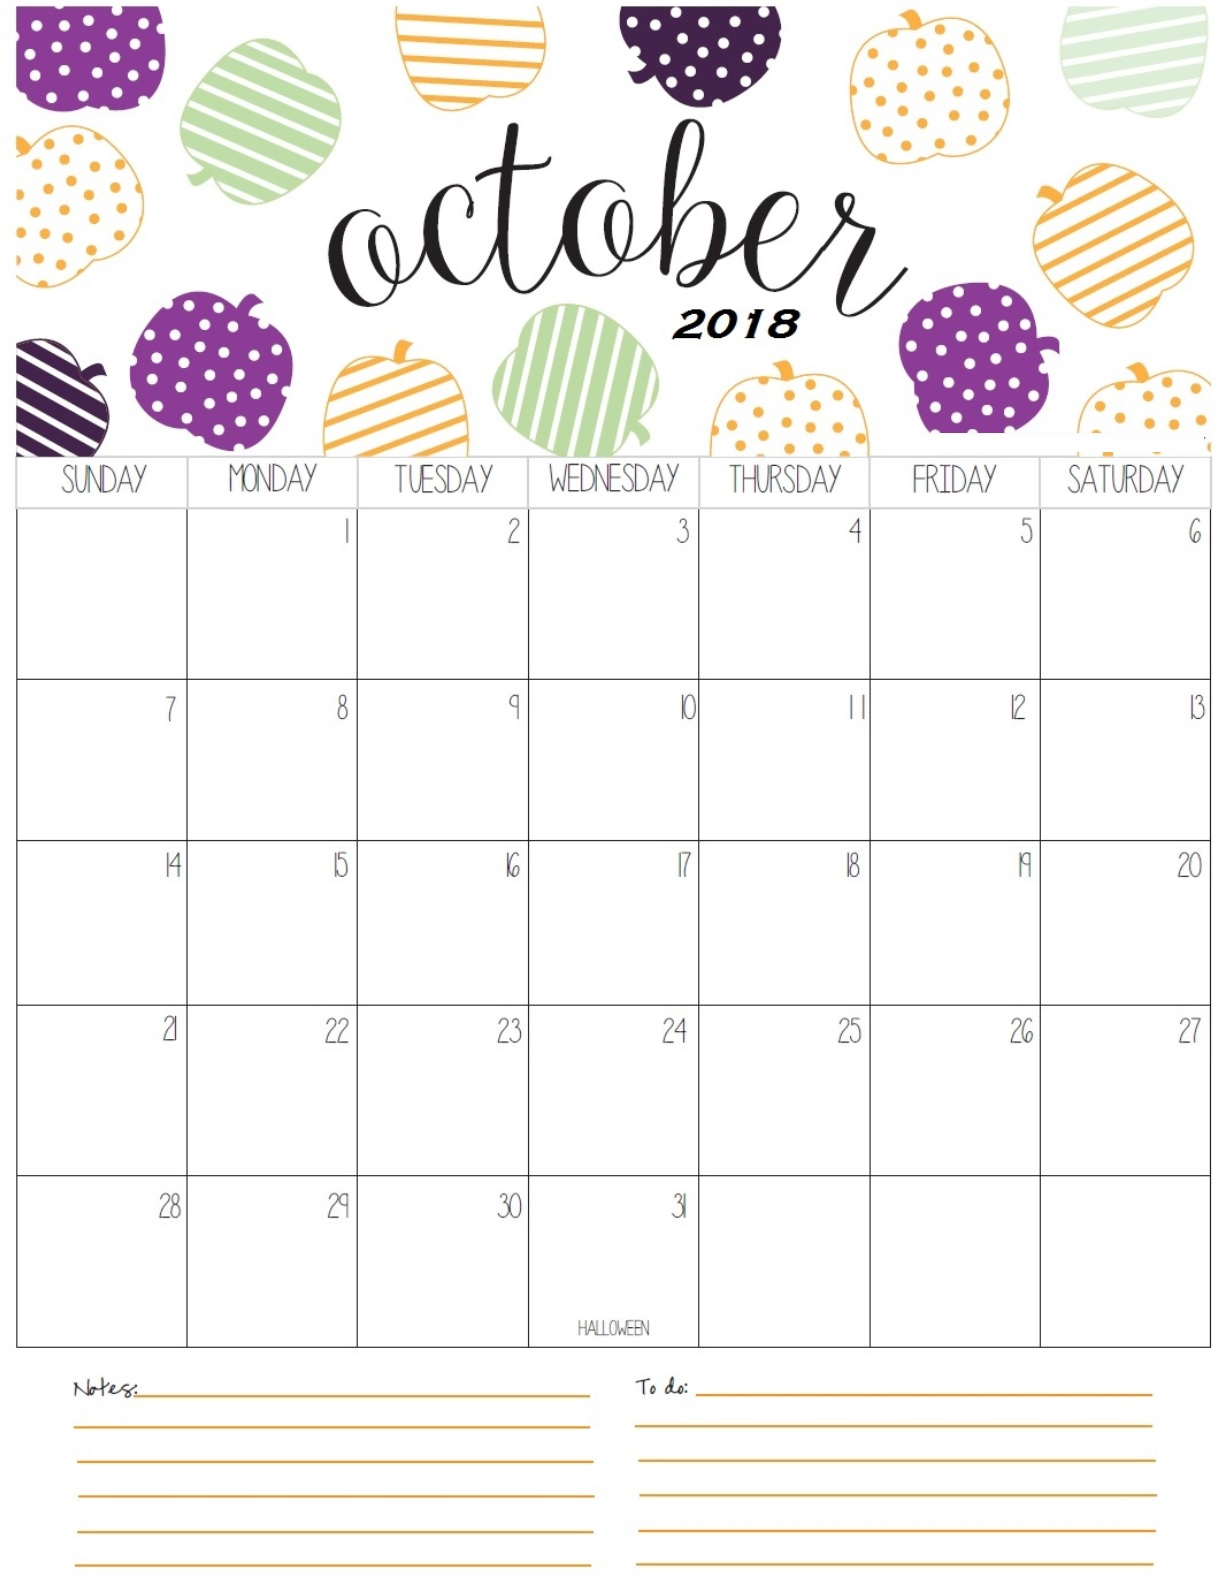 Calendar October 2018 Time Table